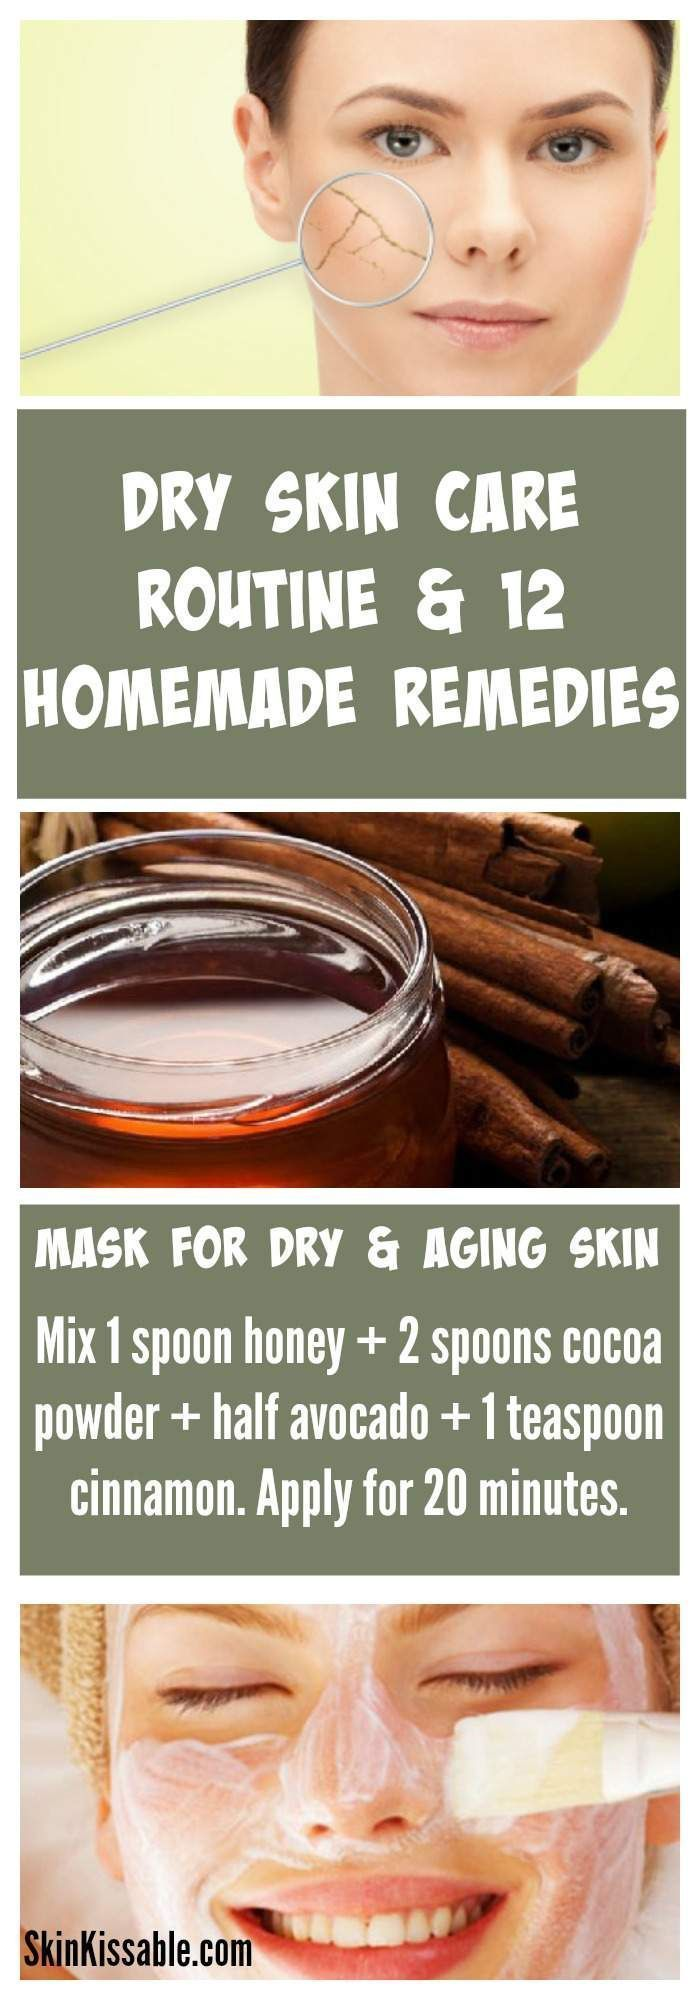 Dry Skin Care Routine and Home Remedies. How to deal with dry skin, best skin care regimen & dry skin  DIY recipes.